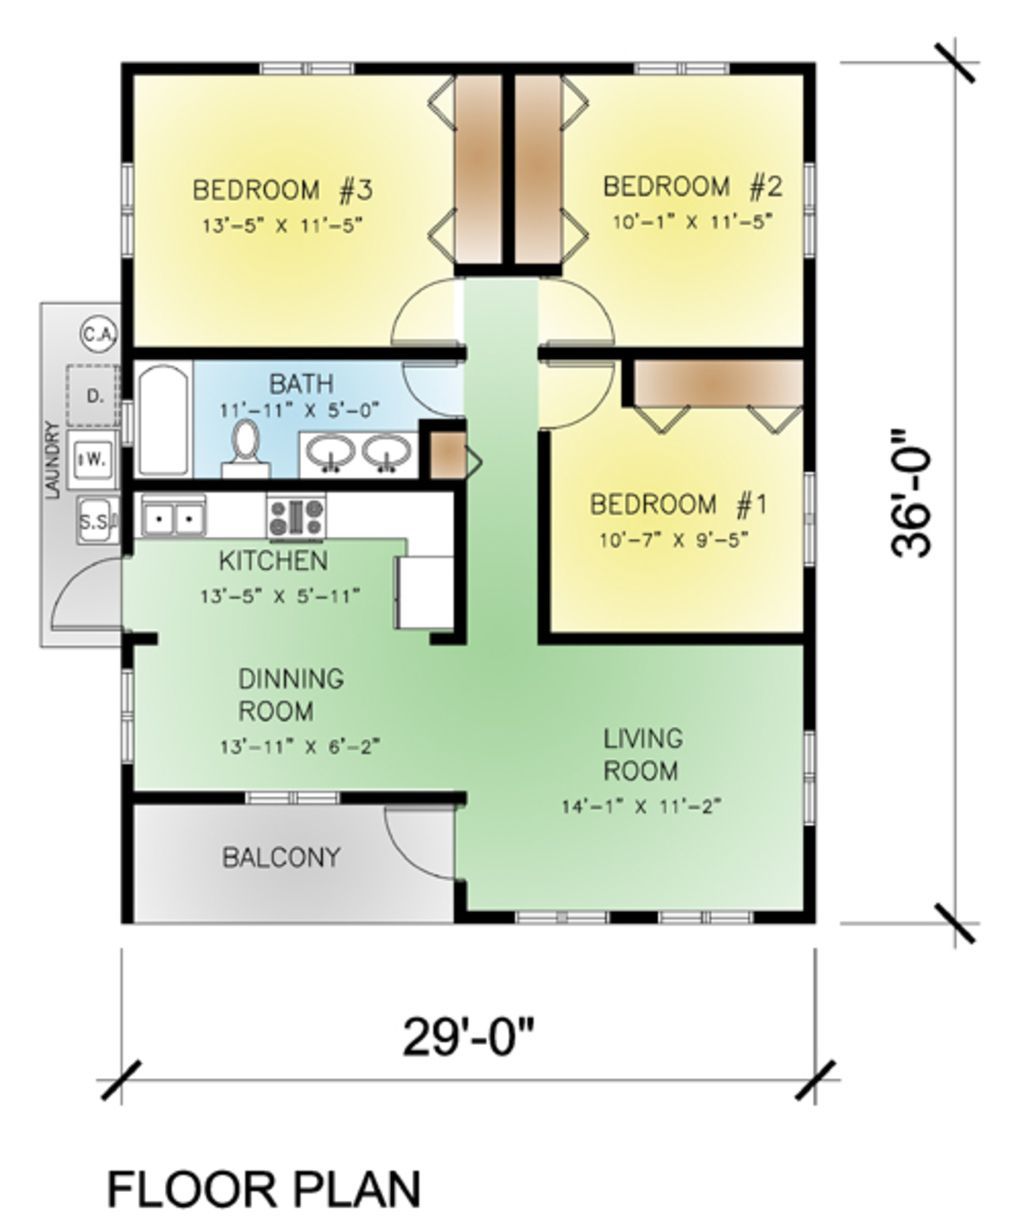 This Modern Design Floor Plan Is 974 Sq Ft And Has 3 Bedrooms And Has  Bathrooms.